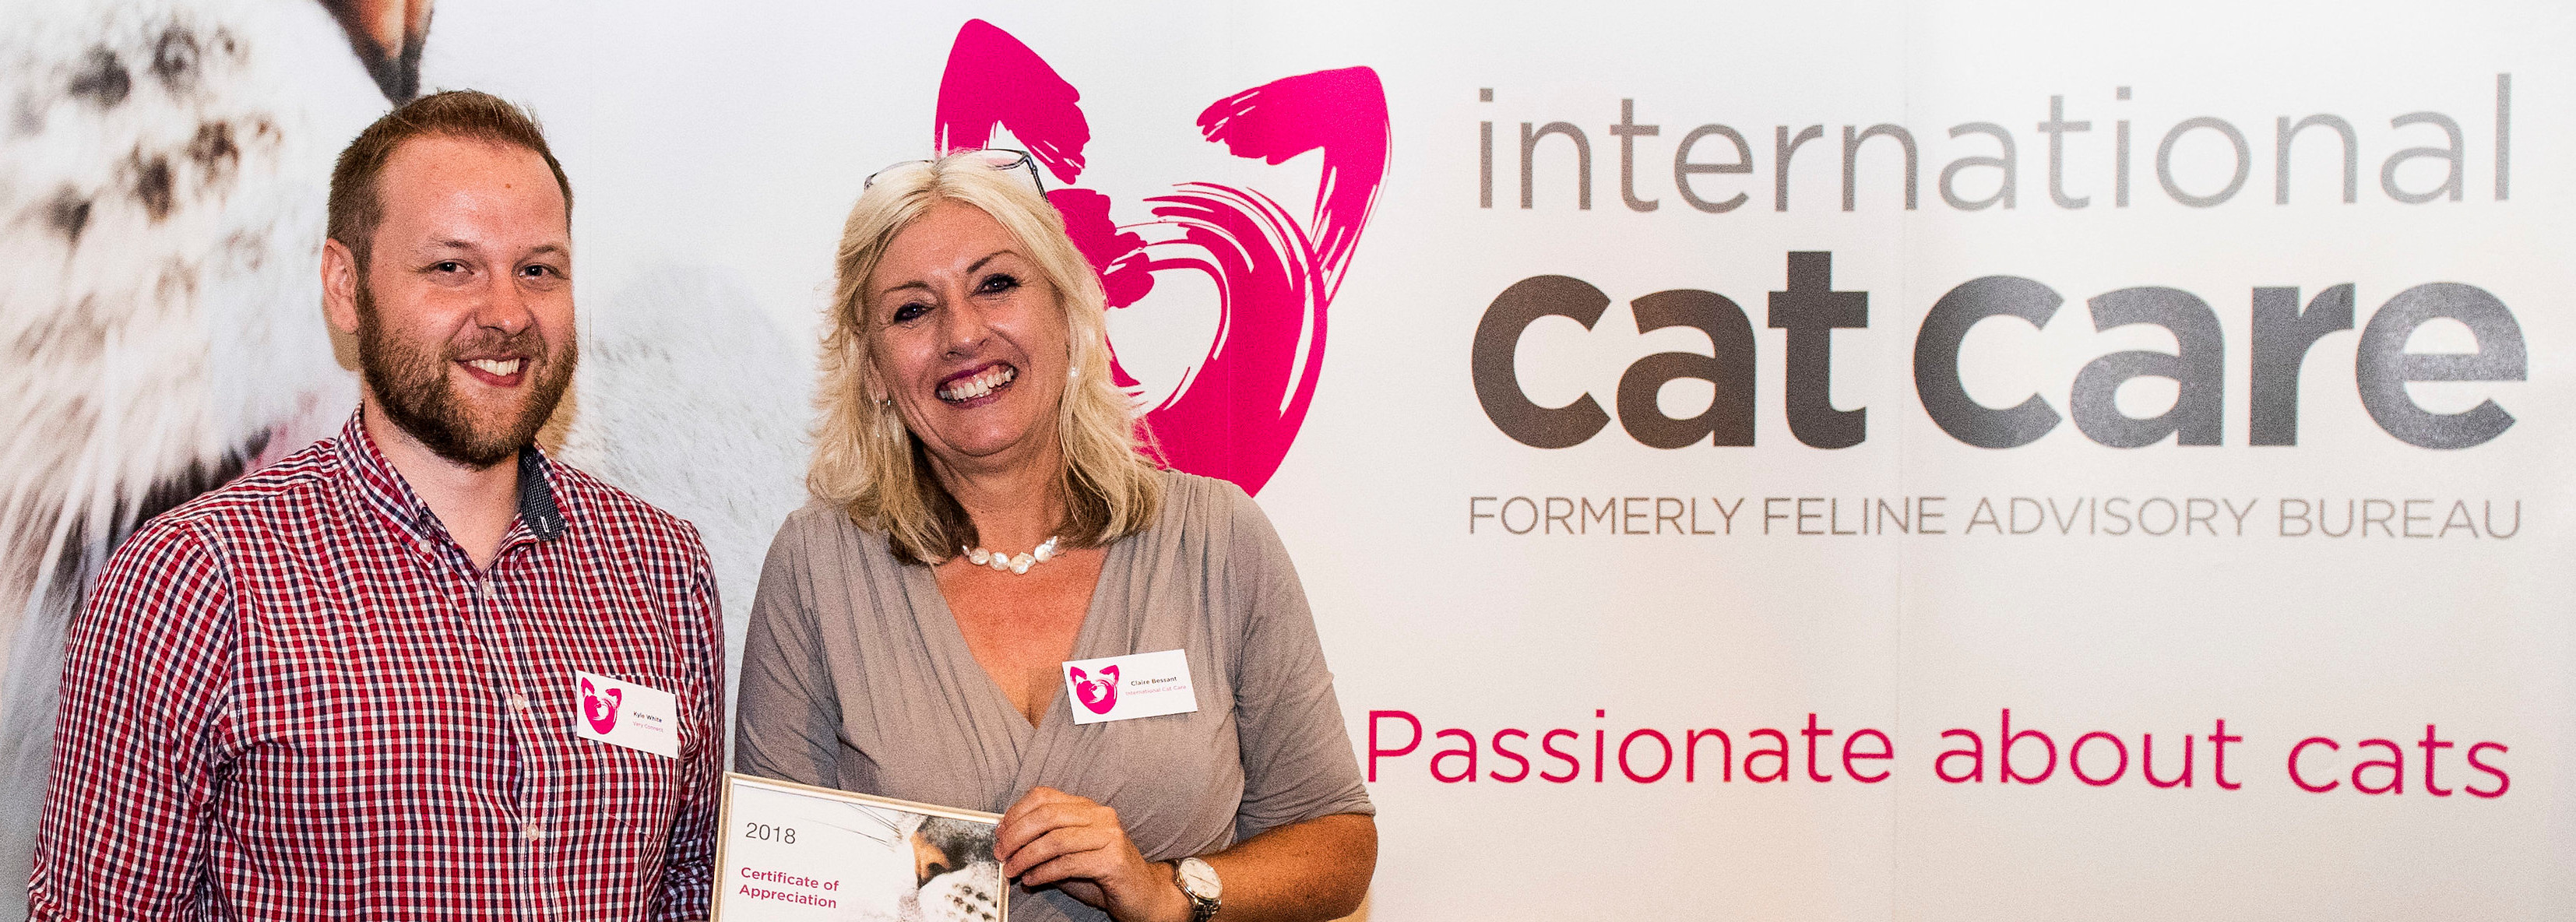 CEOs VeryConnect International Cat Care